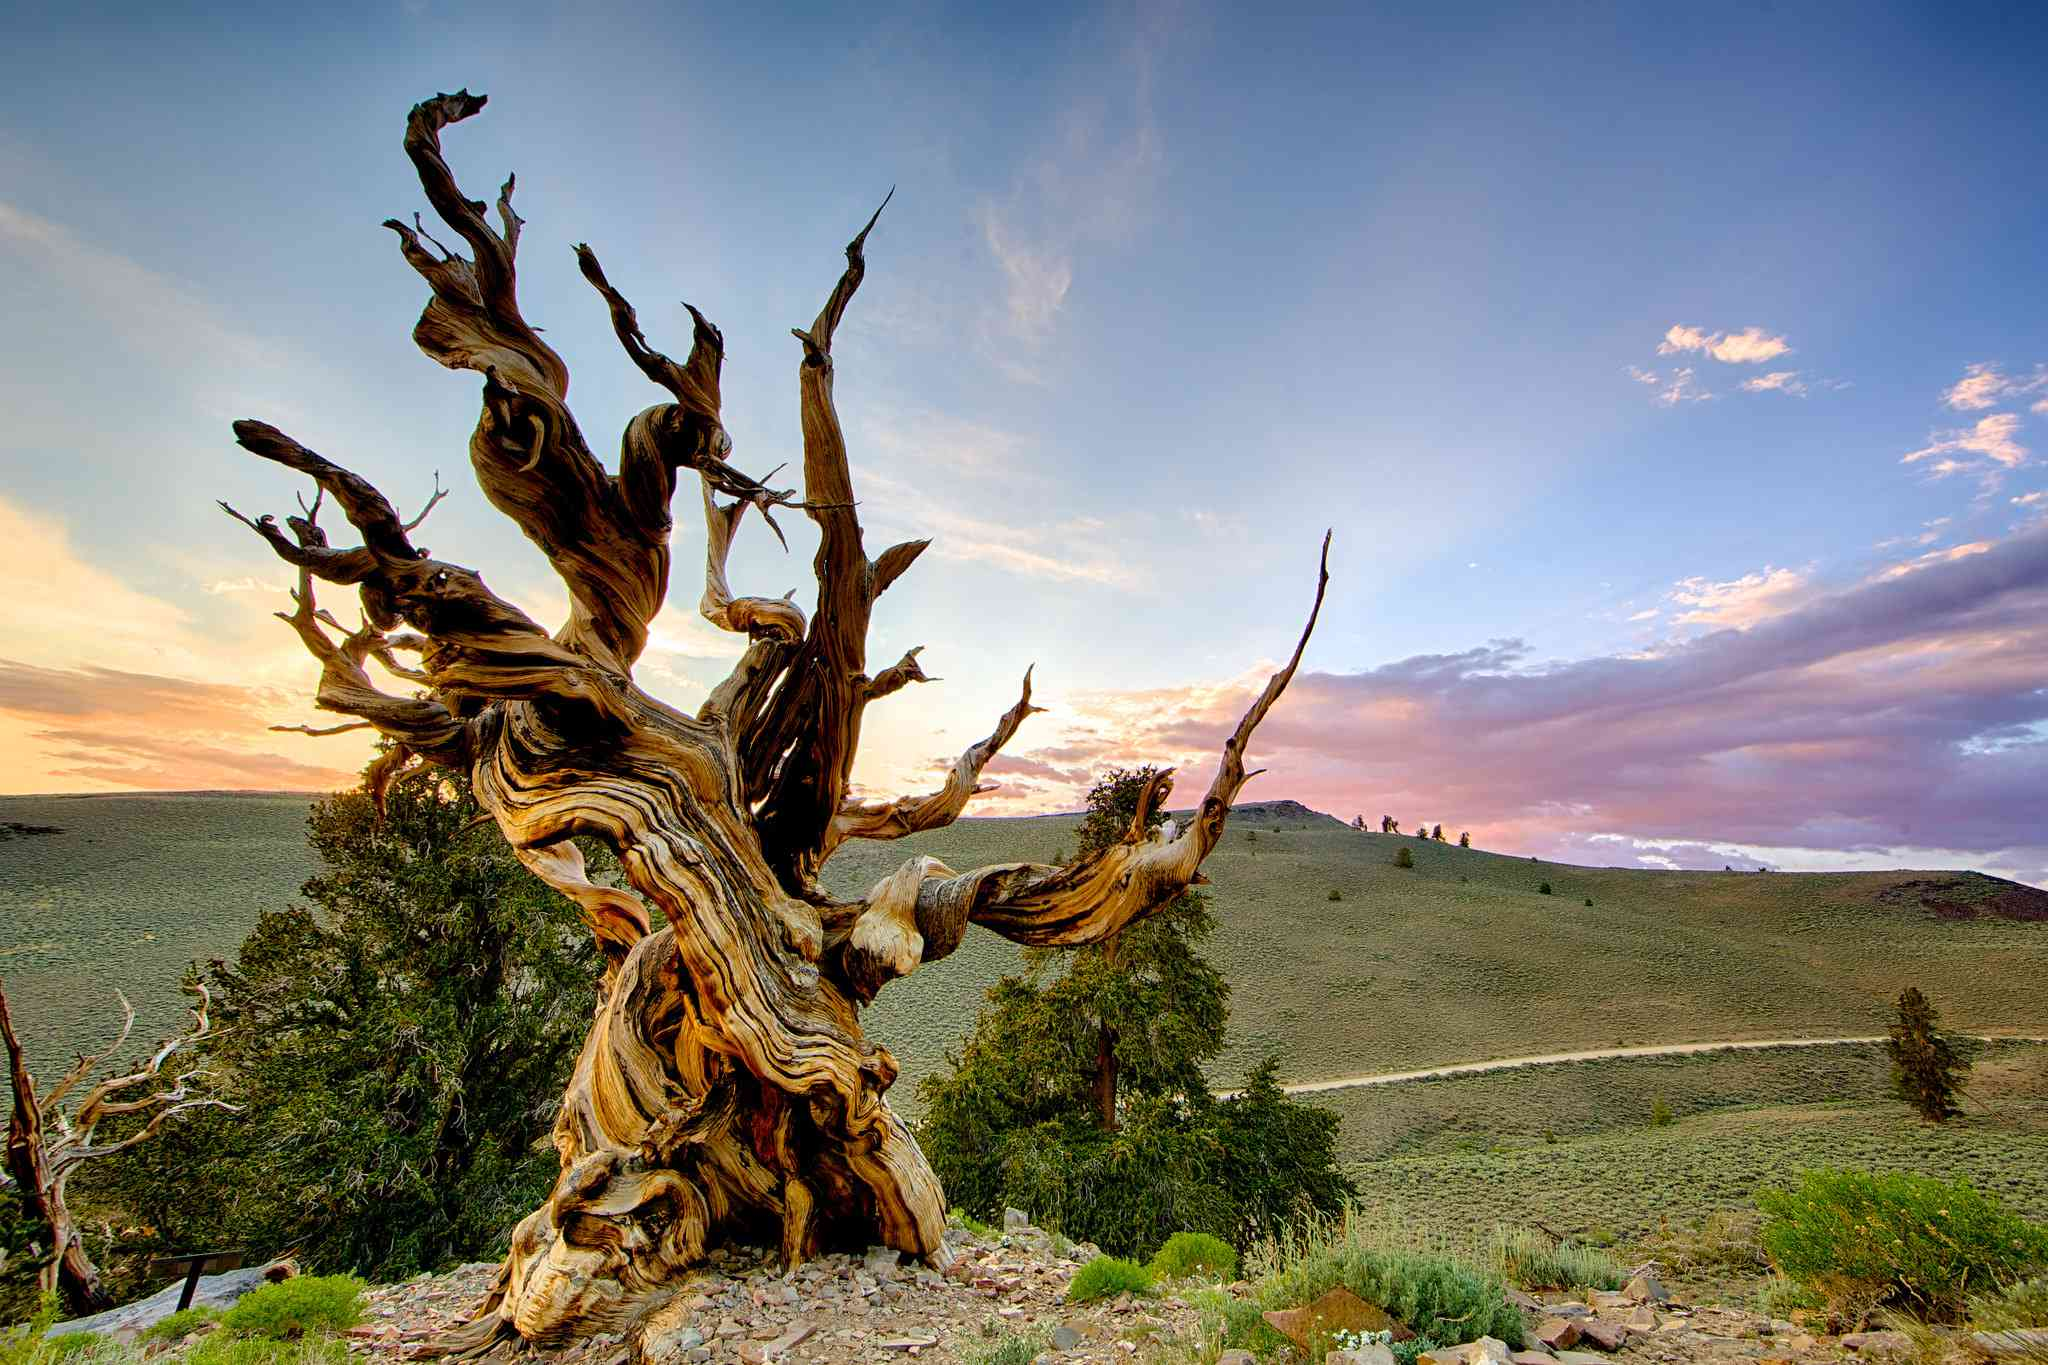 Methuselah Tree, Bristlecone pine with hills and sunset in the background